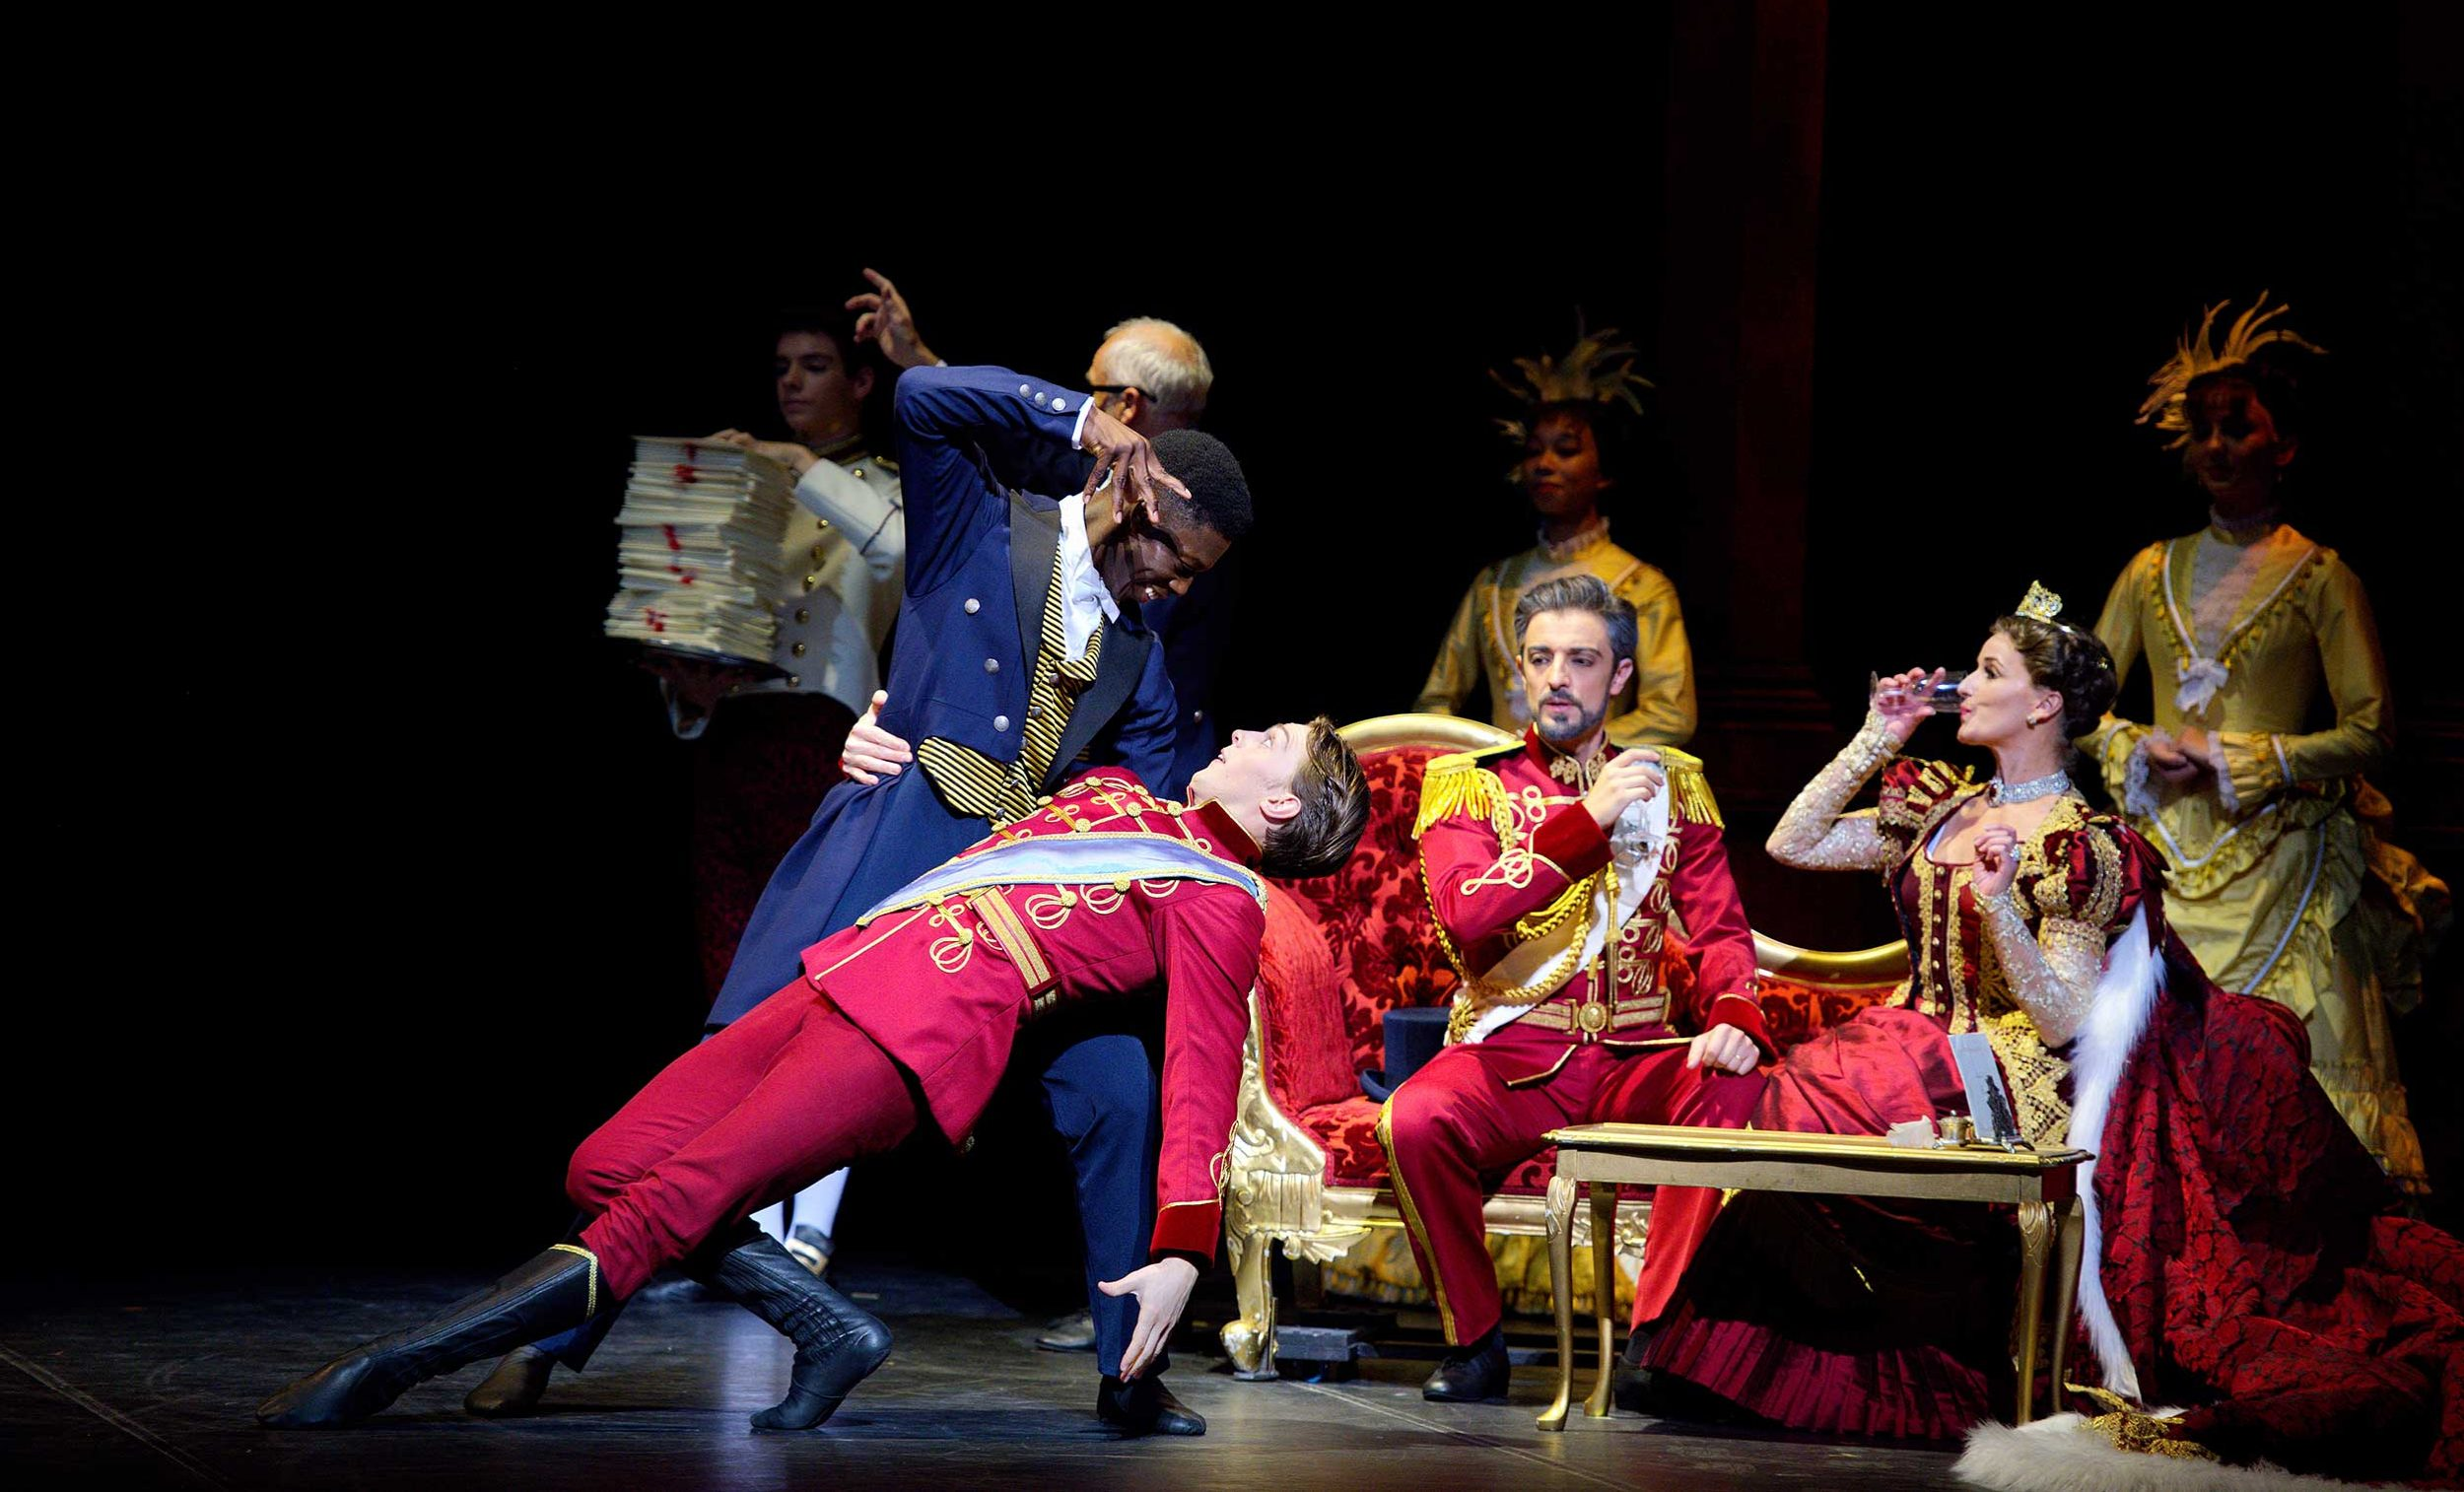 WEB-Brooklyn-Mack-and-Joseph-Caley-with-Jane-Haworth-and-Fernando-Bufala-in-English-National-Ballet's-Cinderella-(c)-Laurent-Liotardo-(1)